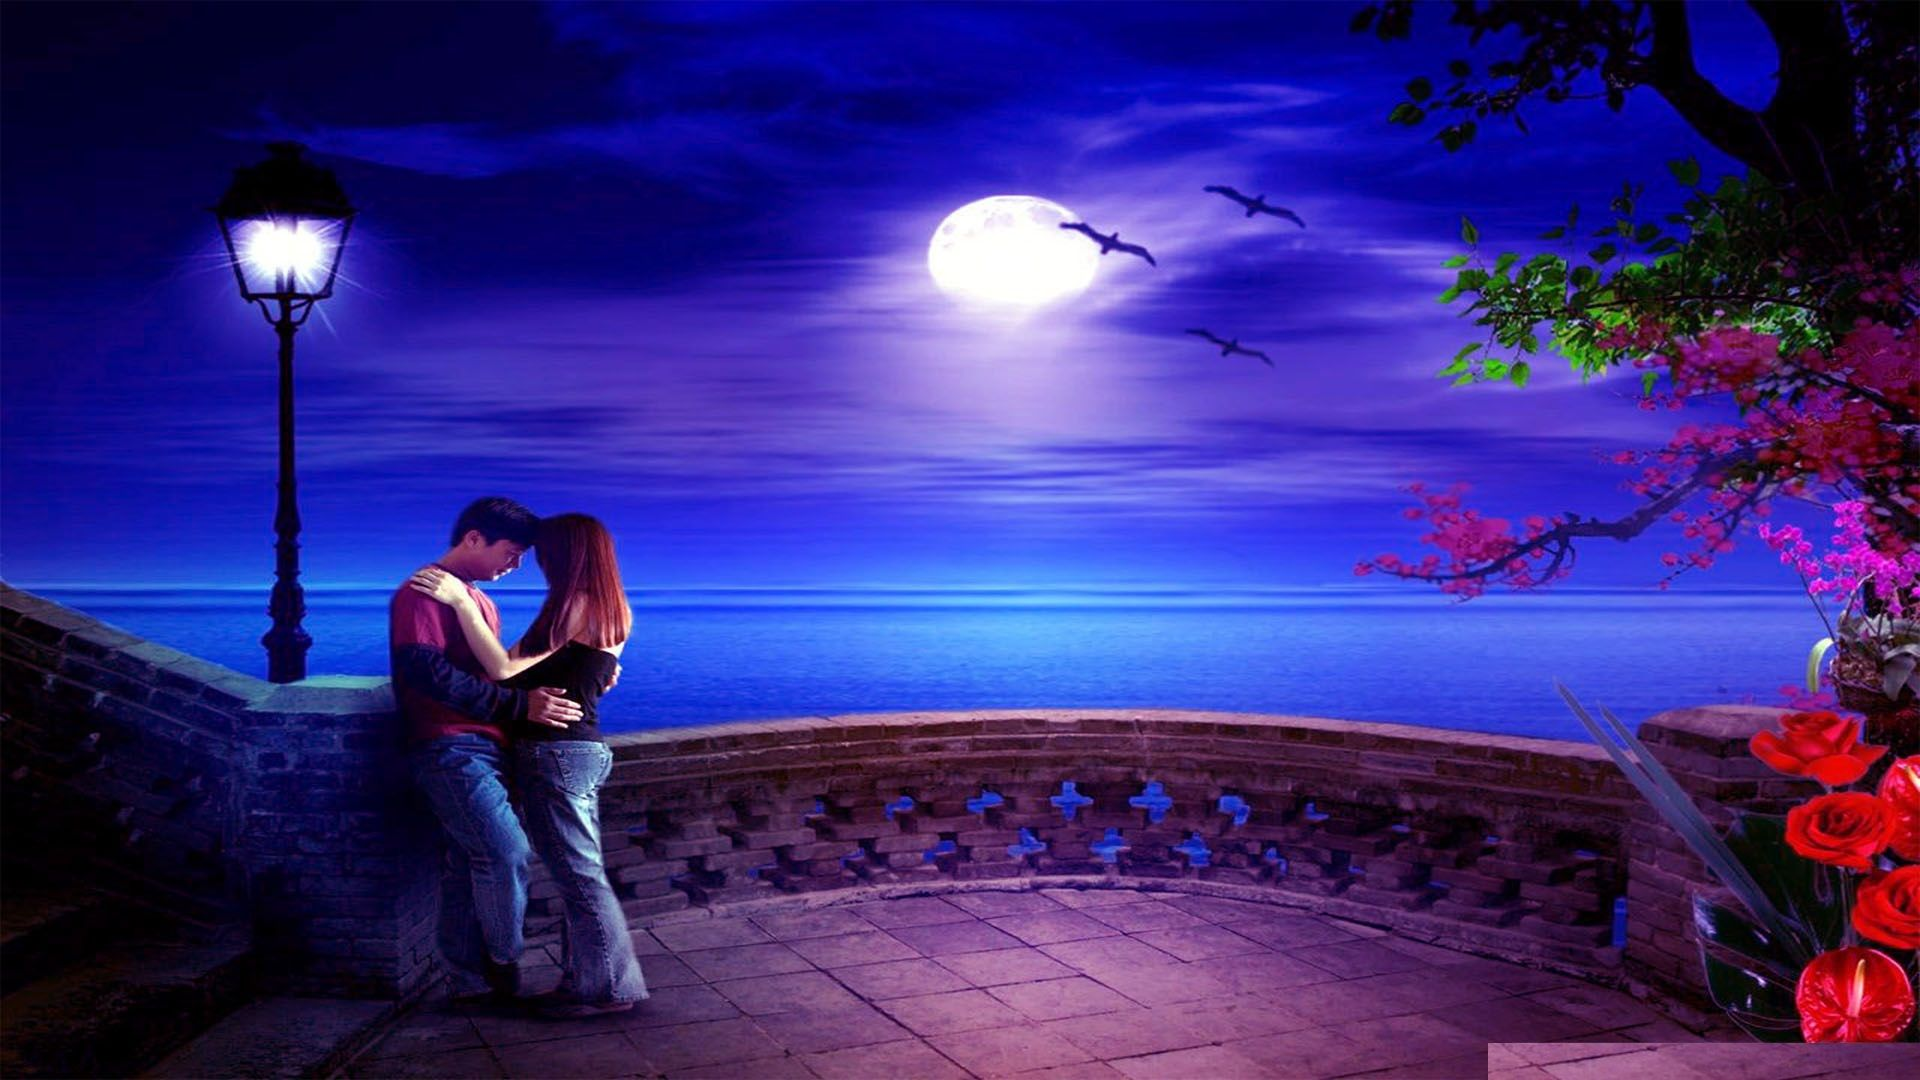 Love Wallpapers New Hd : Romantic Love HD Wallpapers : Find best latest Romantic Love HD Wallpapers for your Pc desktop ...